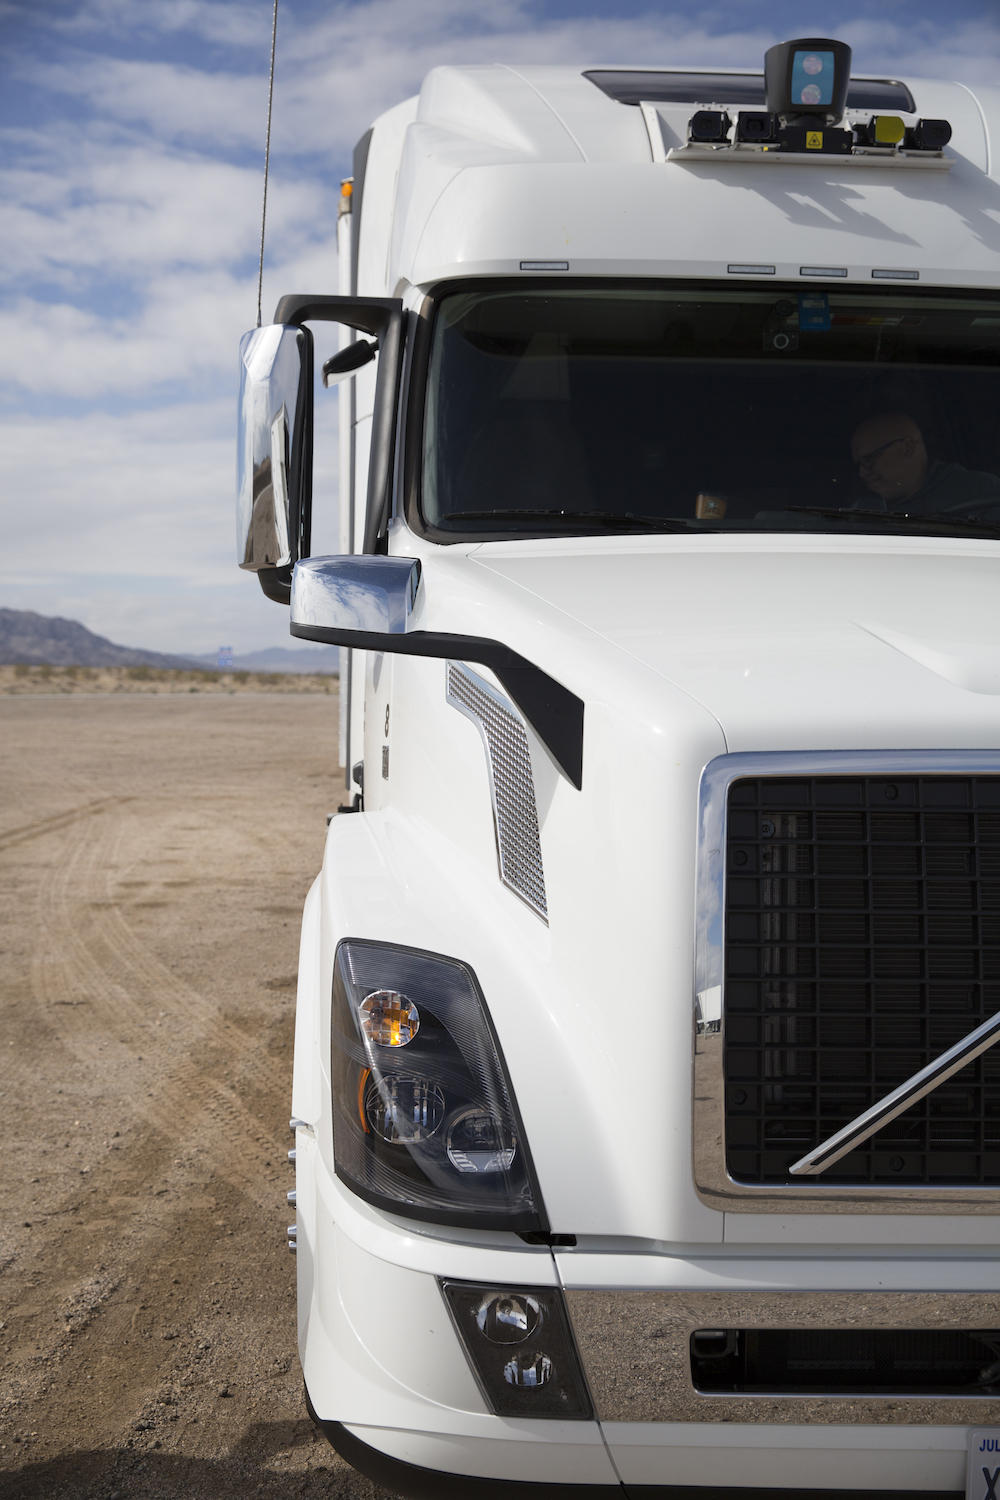 Uber self-driving tractor-trailer truck